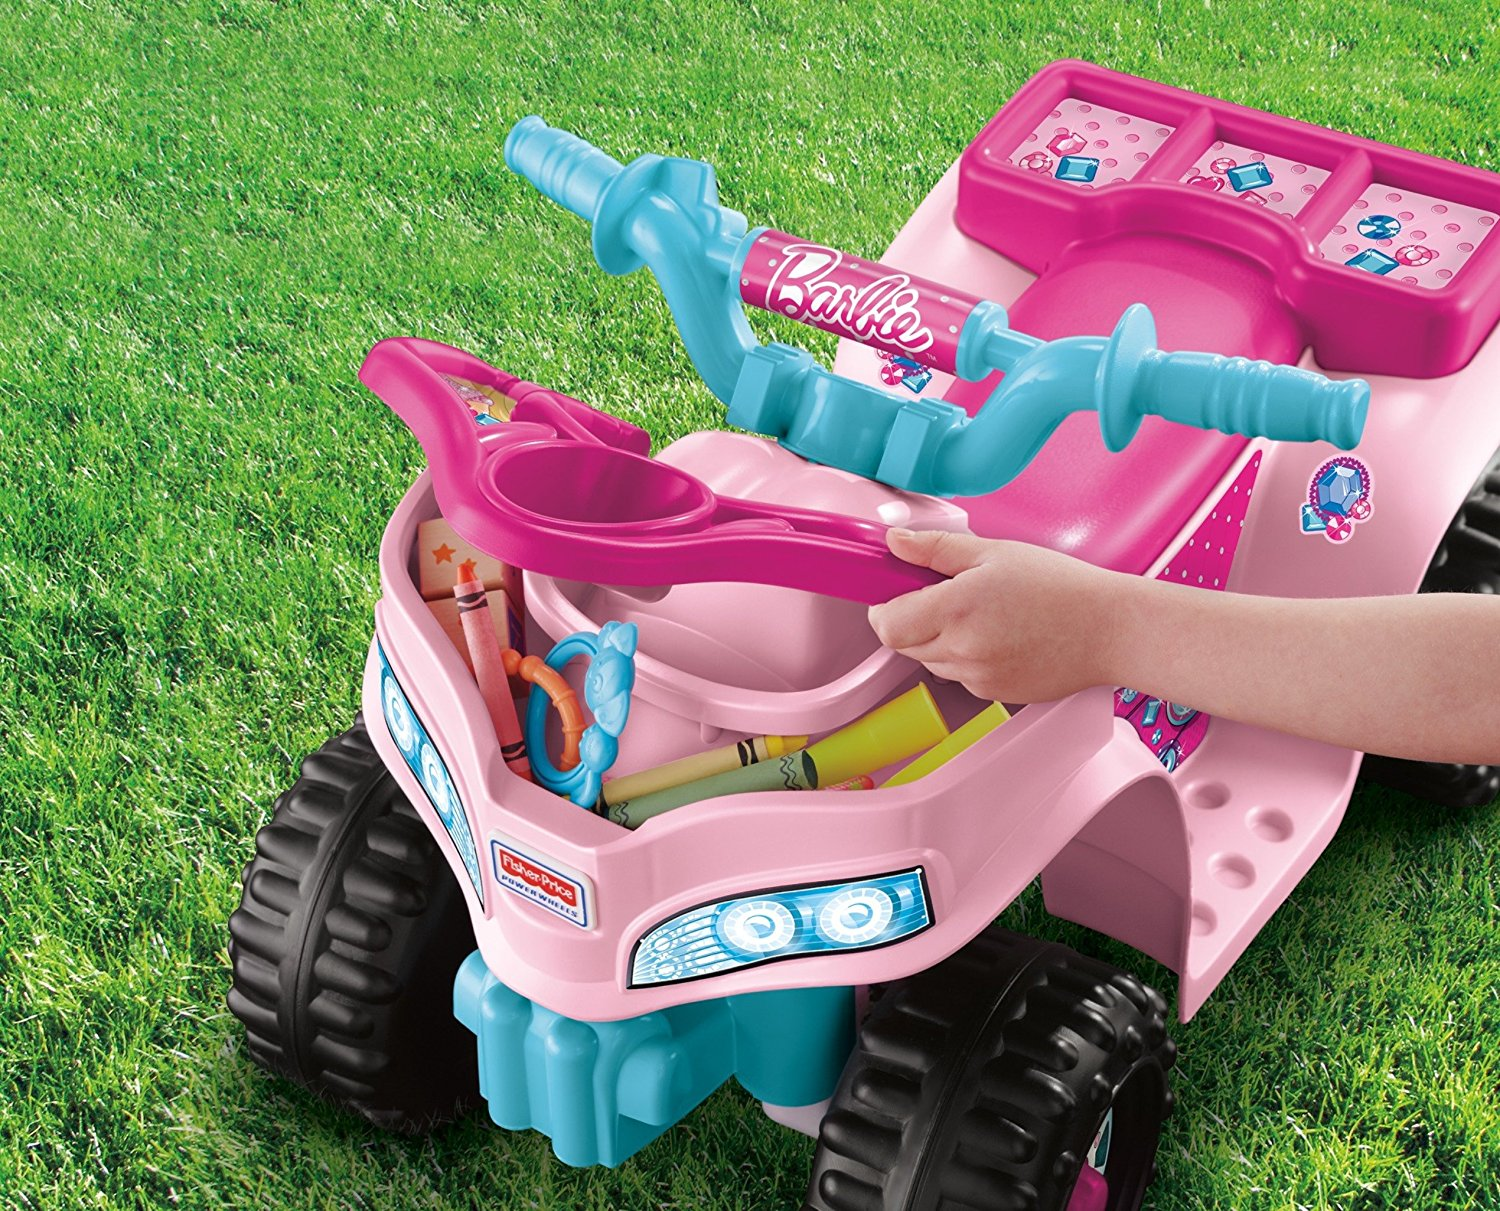 Fisher Price Power Wheels Barbie Lil Quad Vehicle Ride On Cdy14 You Are My Everything Yame Inc